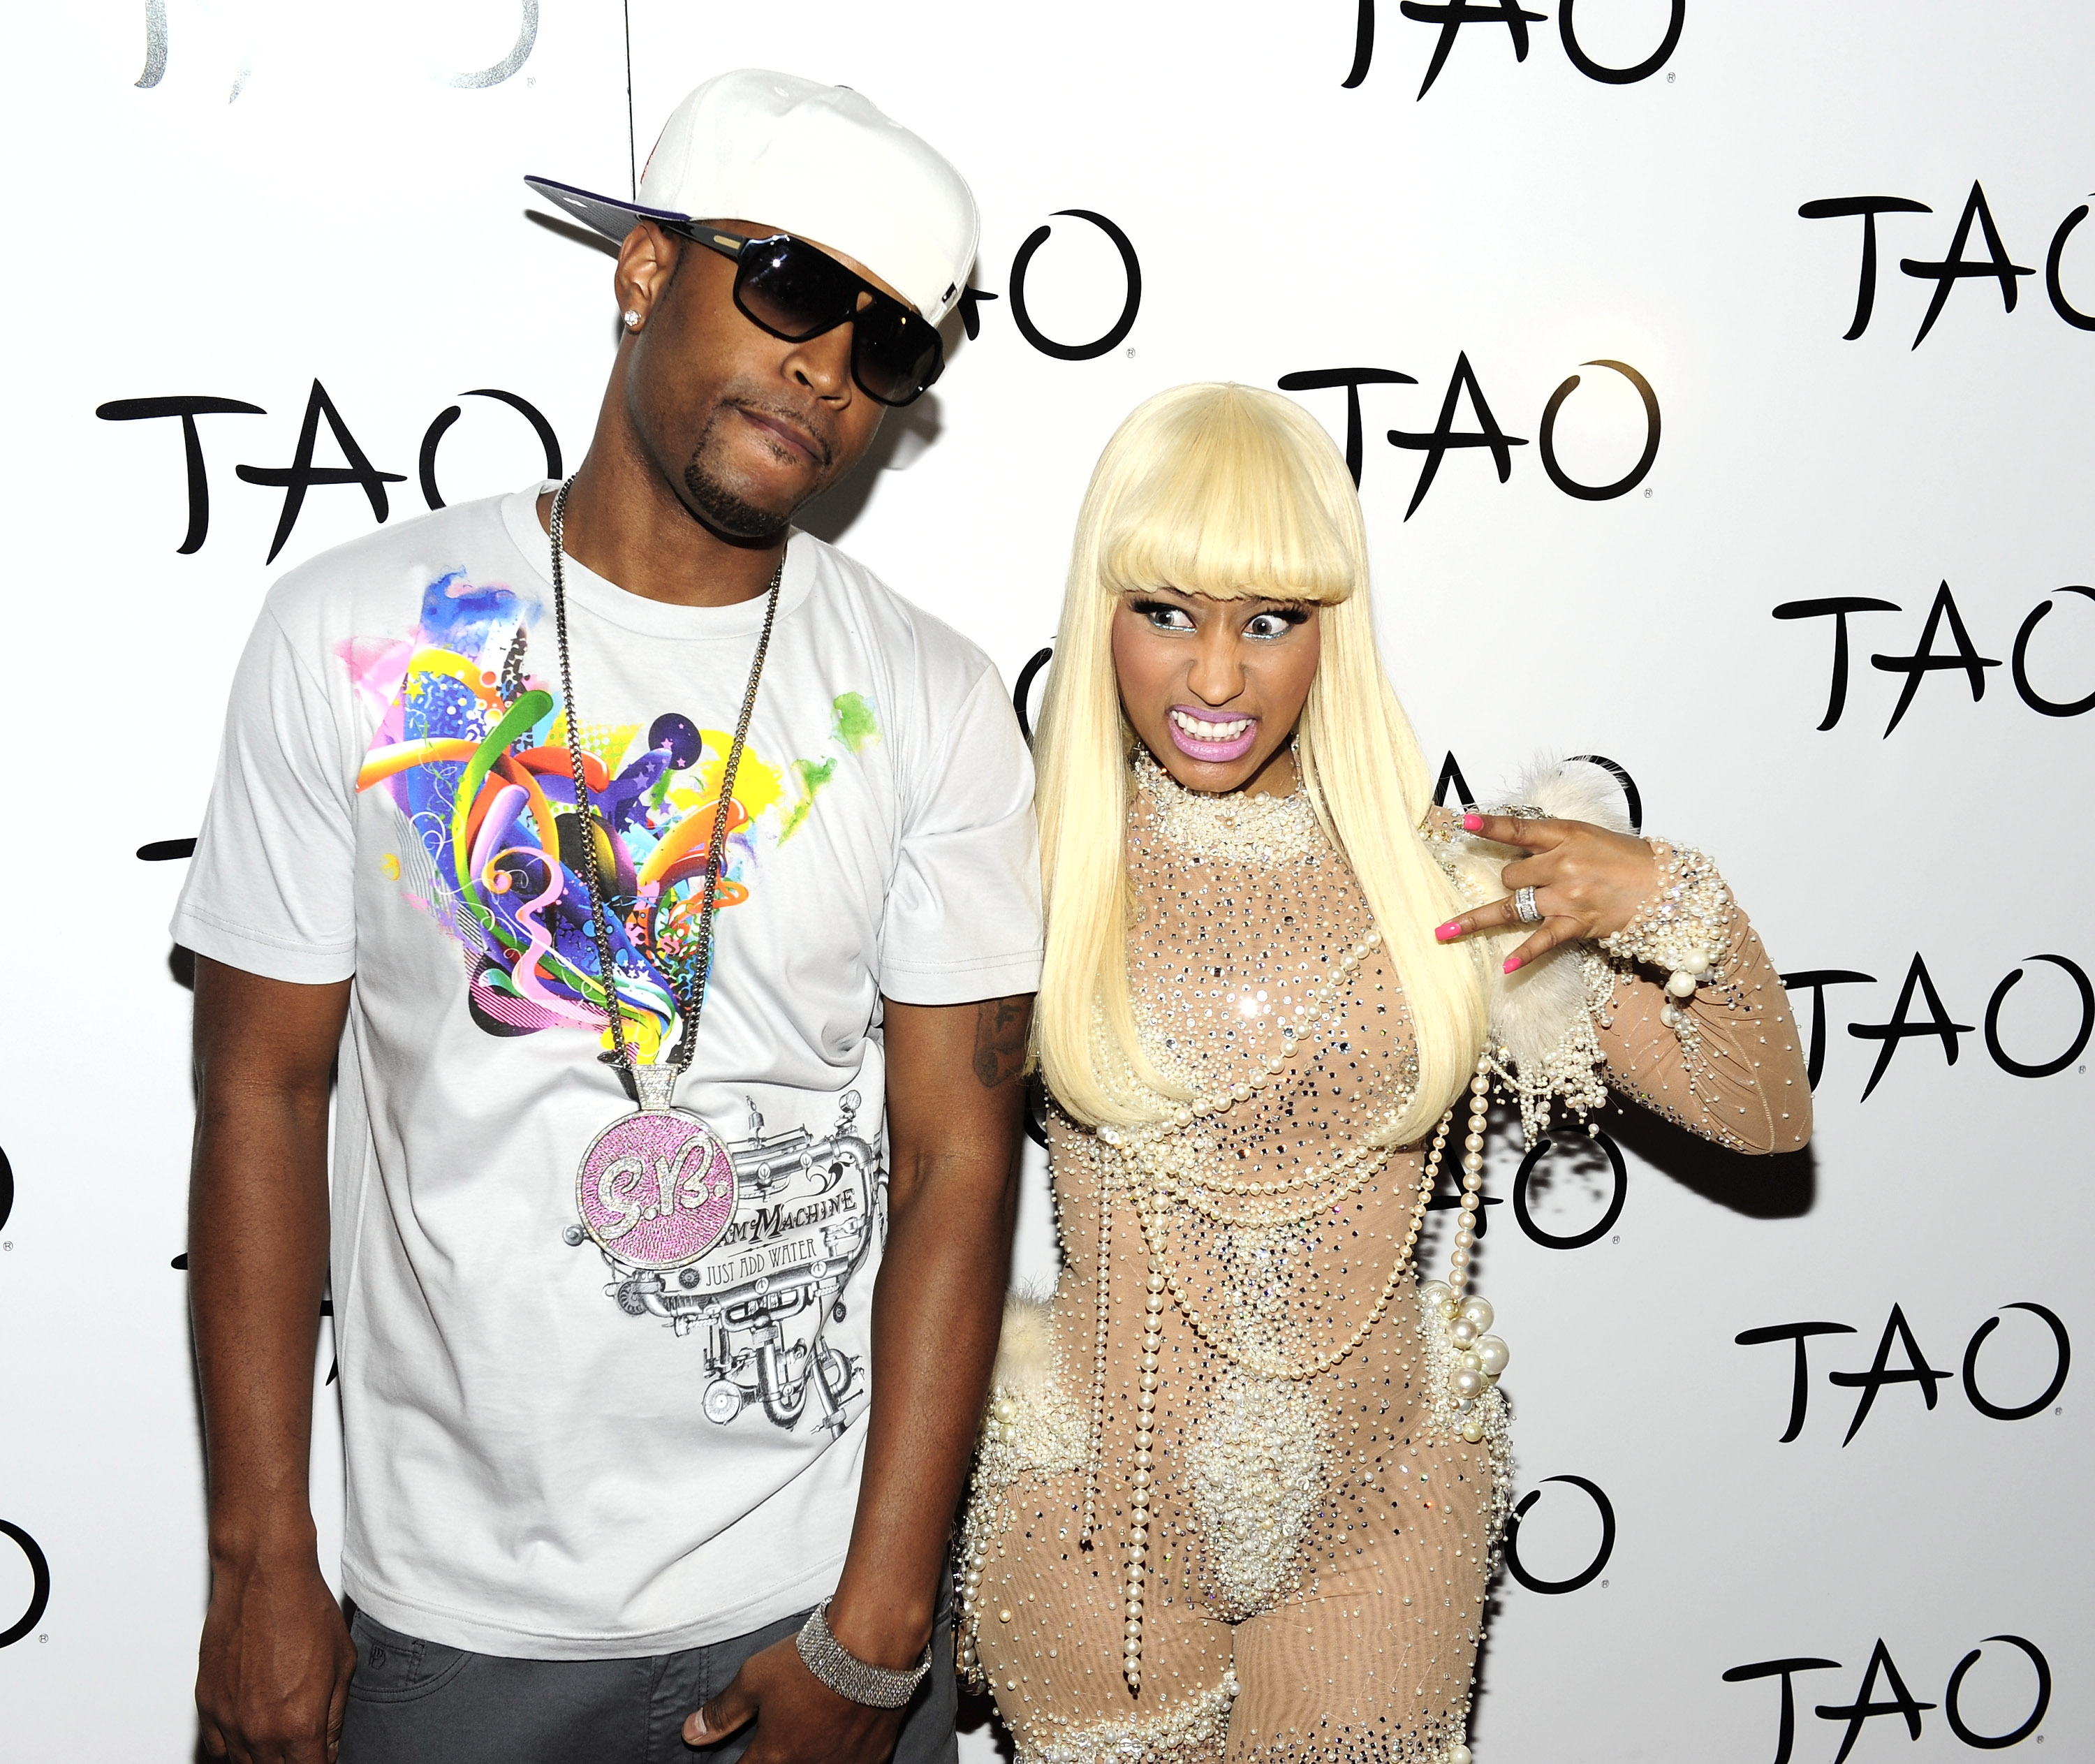 Nicki Minaj Celebrates Her Birthday At TAO Nightclub